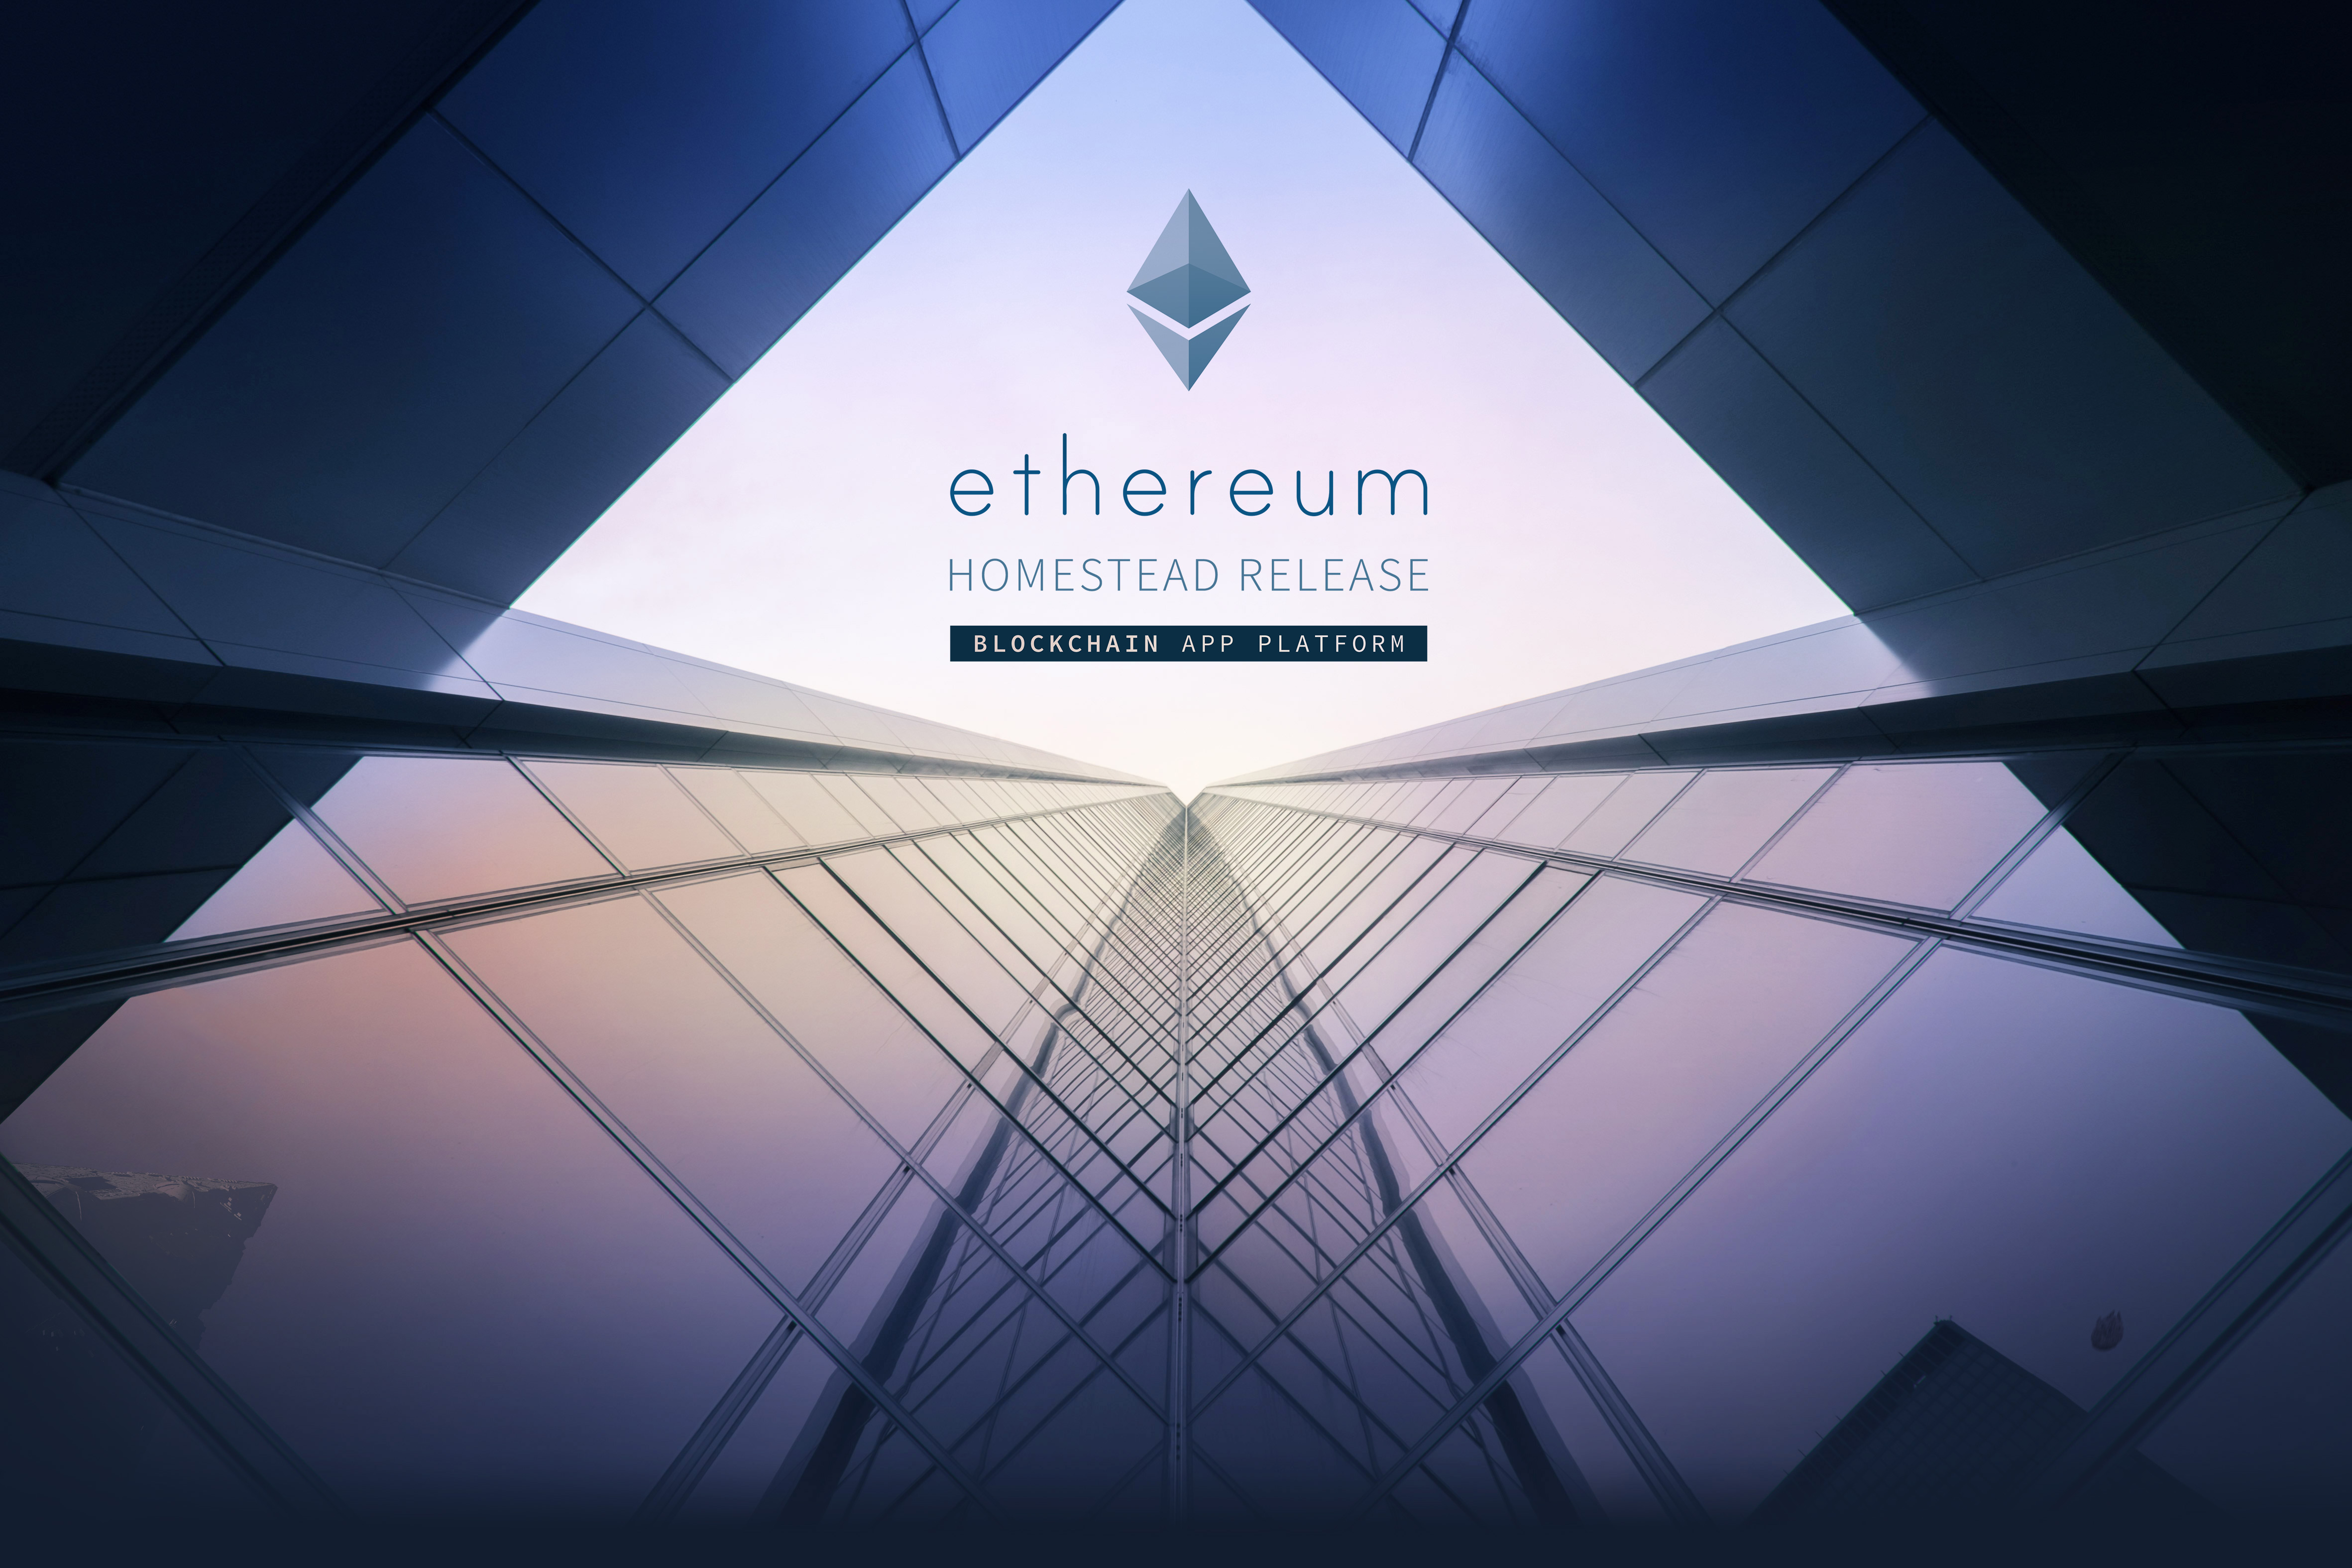 Yeheycom Ethereum wallpaper homestead small 4725x3150